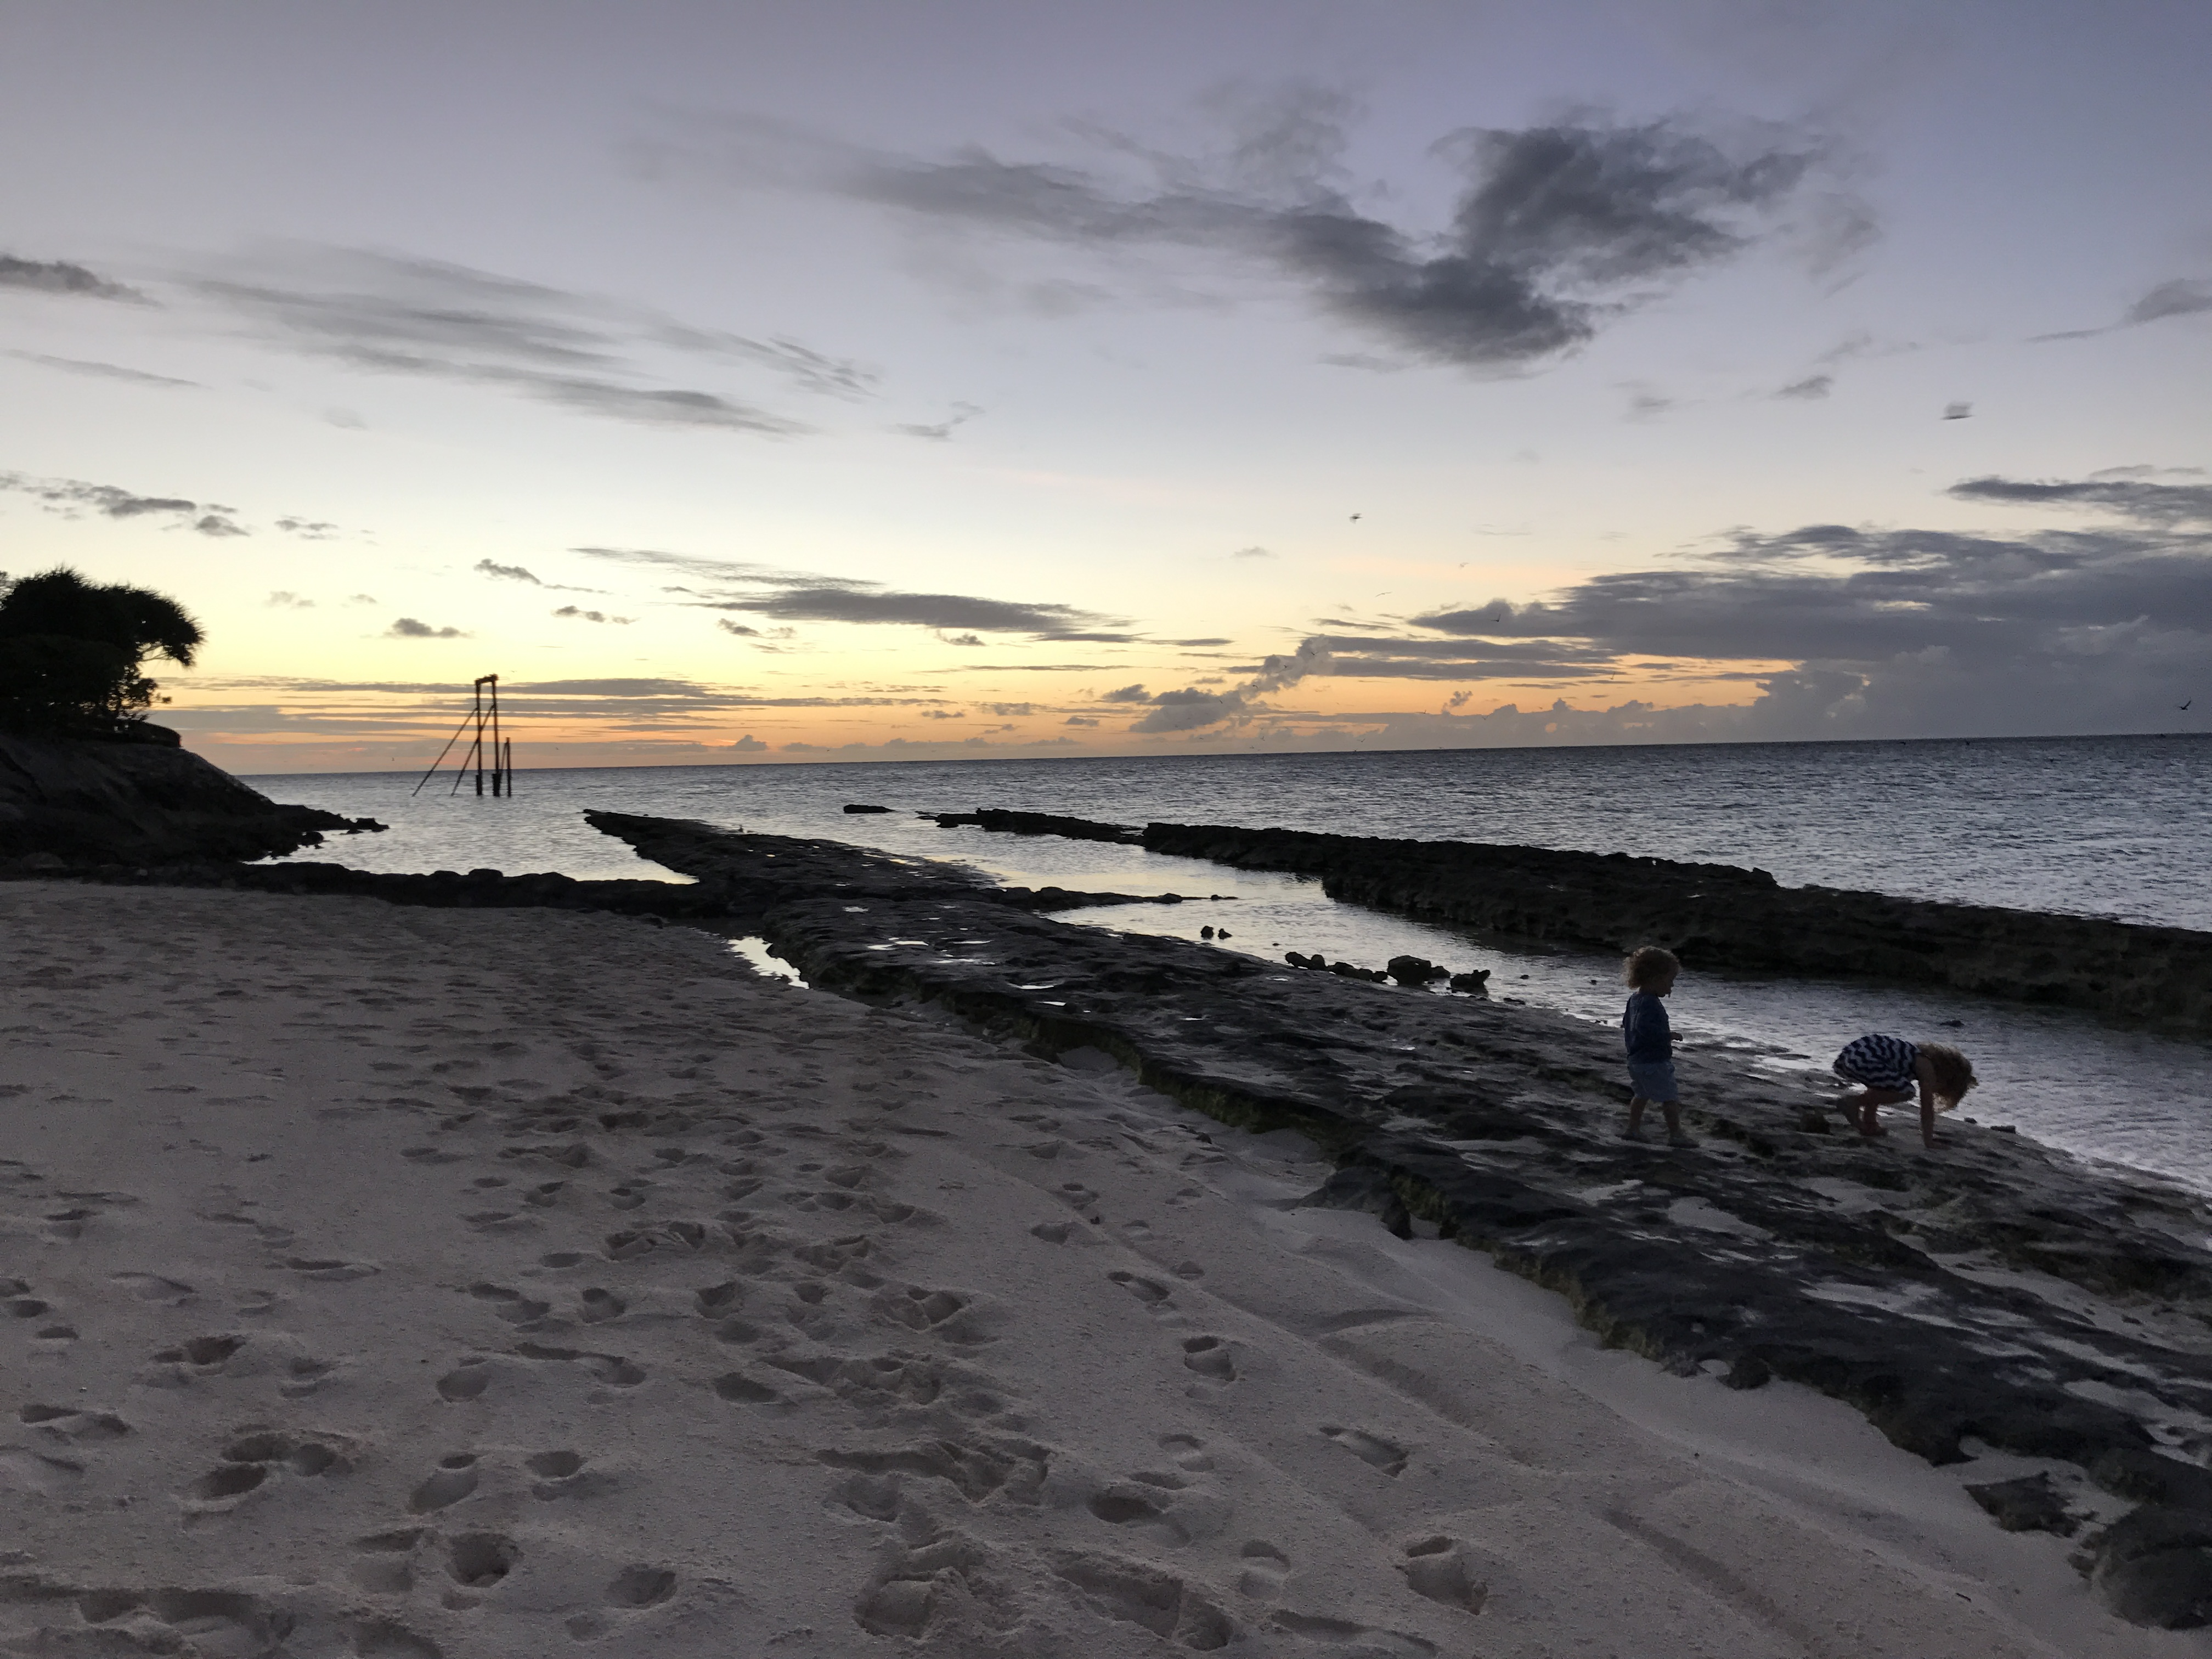 Sunset on Heron Island